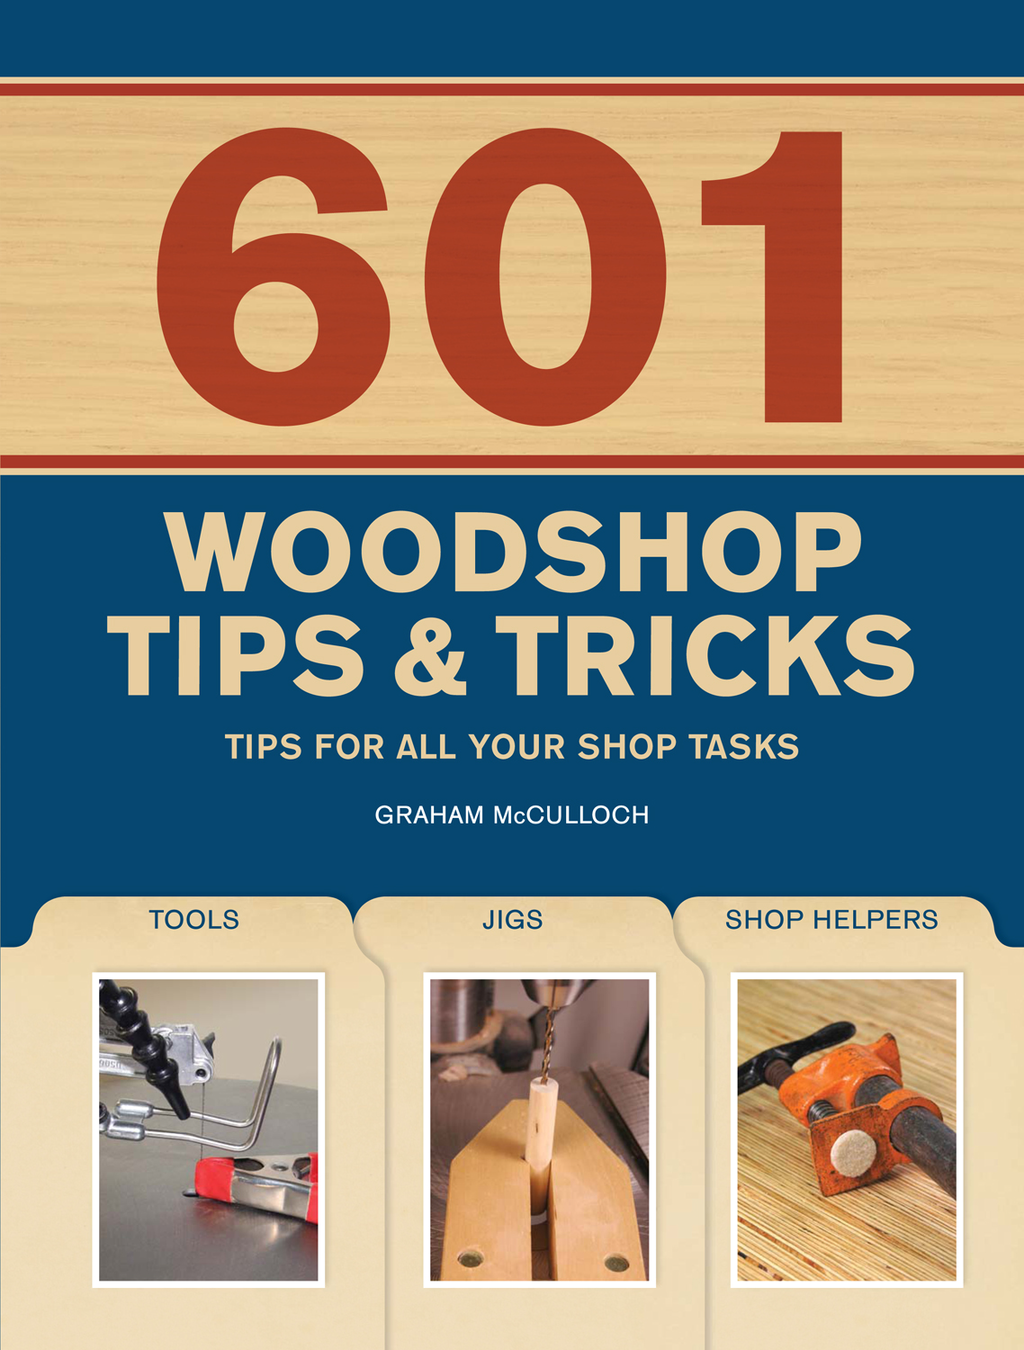 601 Woodshop Tips & Tricks By: Graham McCullouch